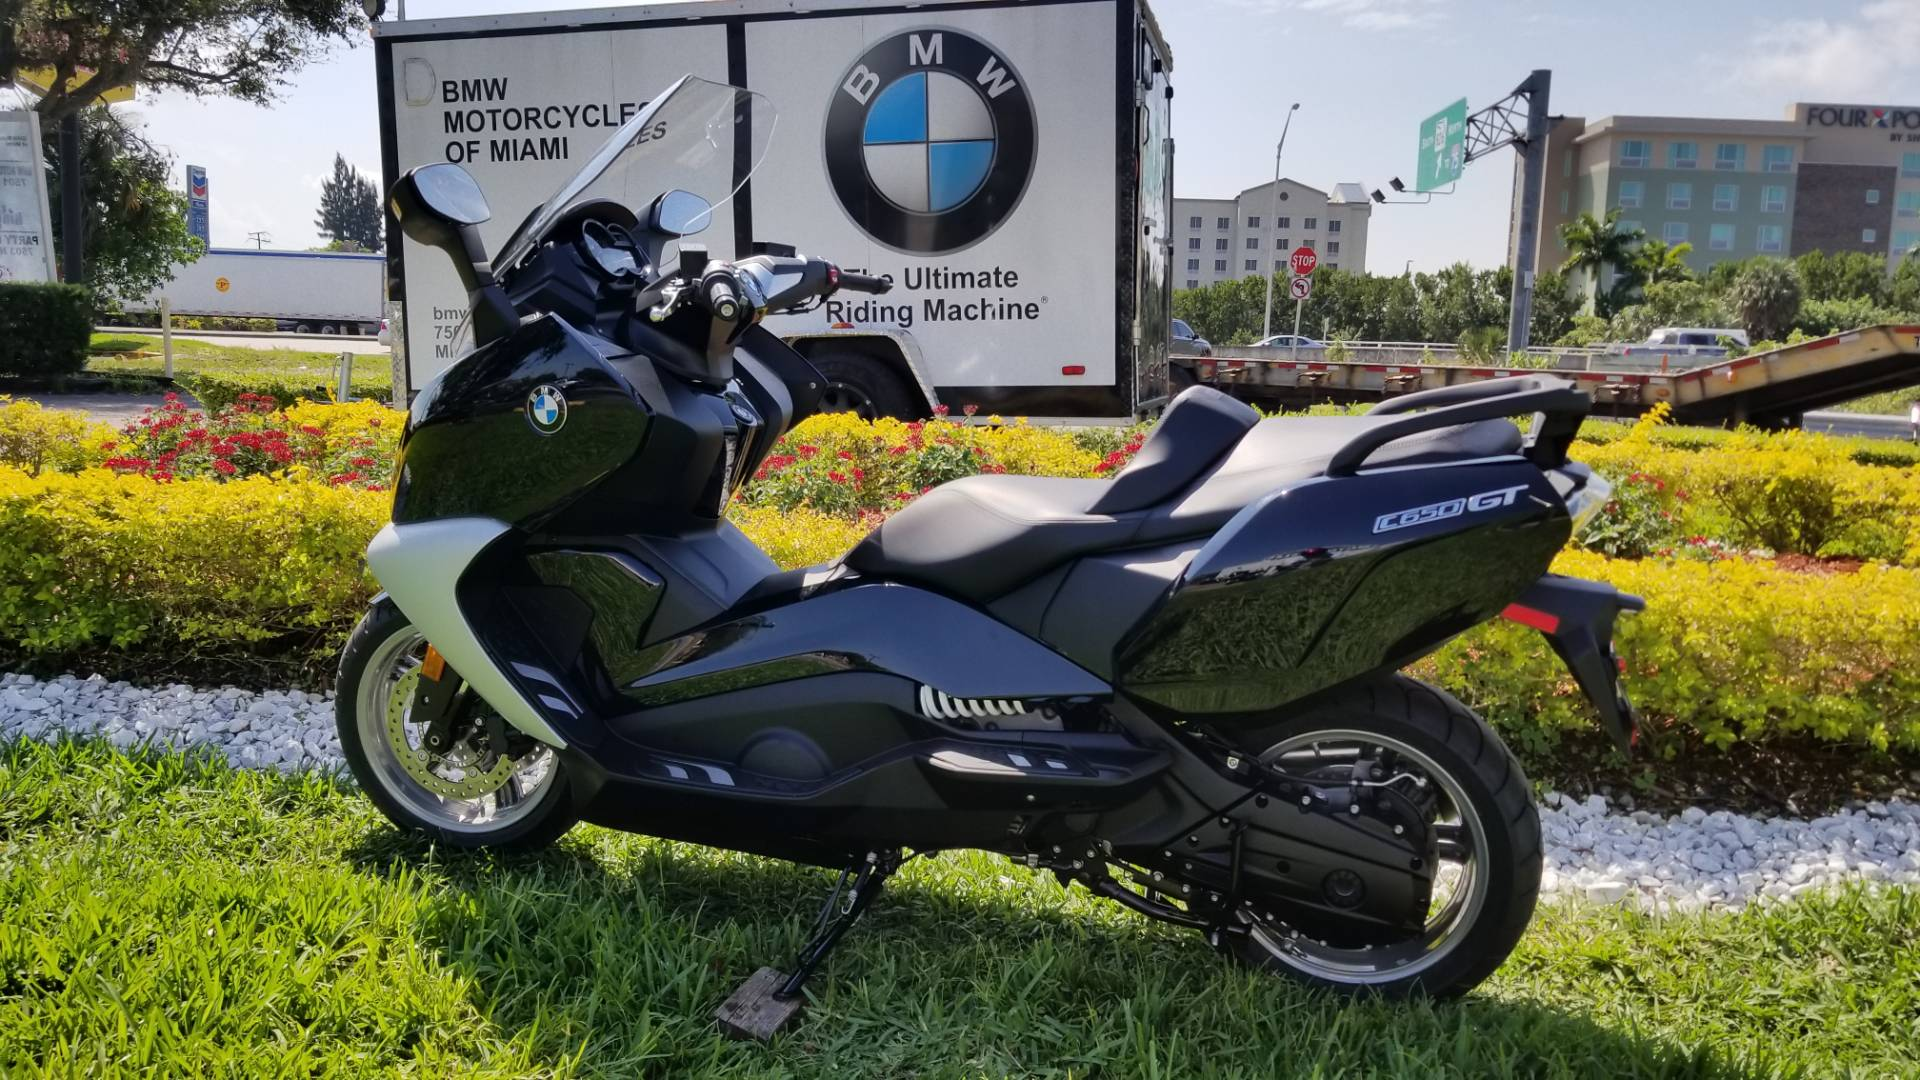 New 2019 BMW C 650 GT for sale, BMW C 650GT for sale, BMW Motorcycle C650GT, new BMW Scooter, Maxi Scooter, BMW. BMW Motorcycles of Miami, Motorcycles of Miami, Motorcycles Miami, New Motorcycles, Used Motorcycles, pre-owned. #BMWMotorcyclesOfMiami #MotorcyclesOfMiami #MotorcyclesMiami - Photo 9